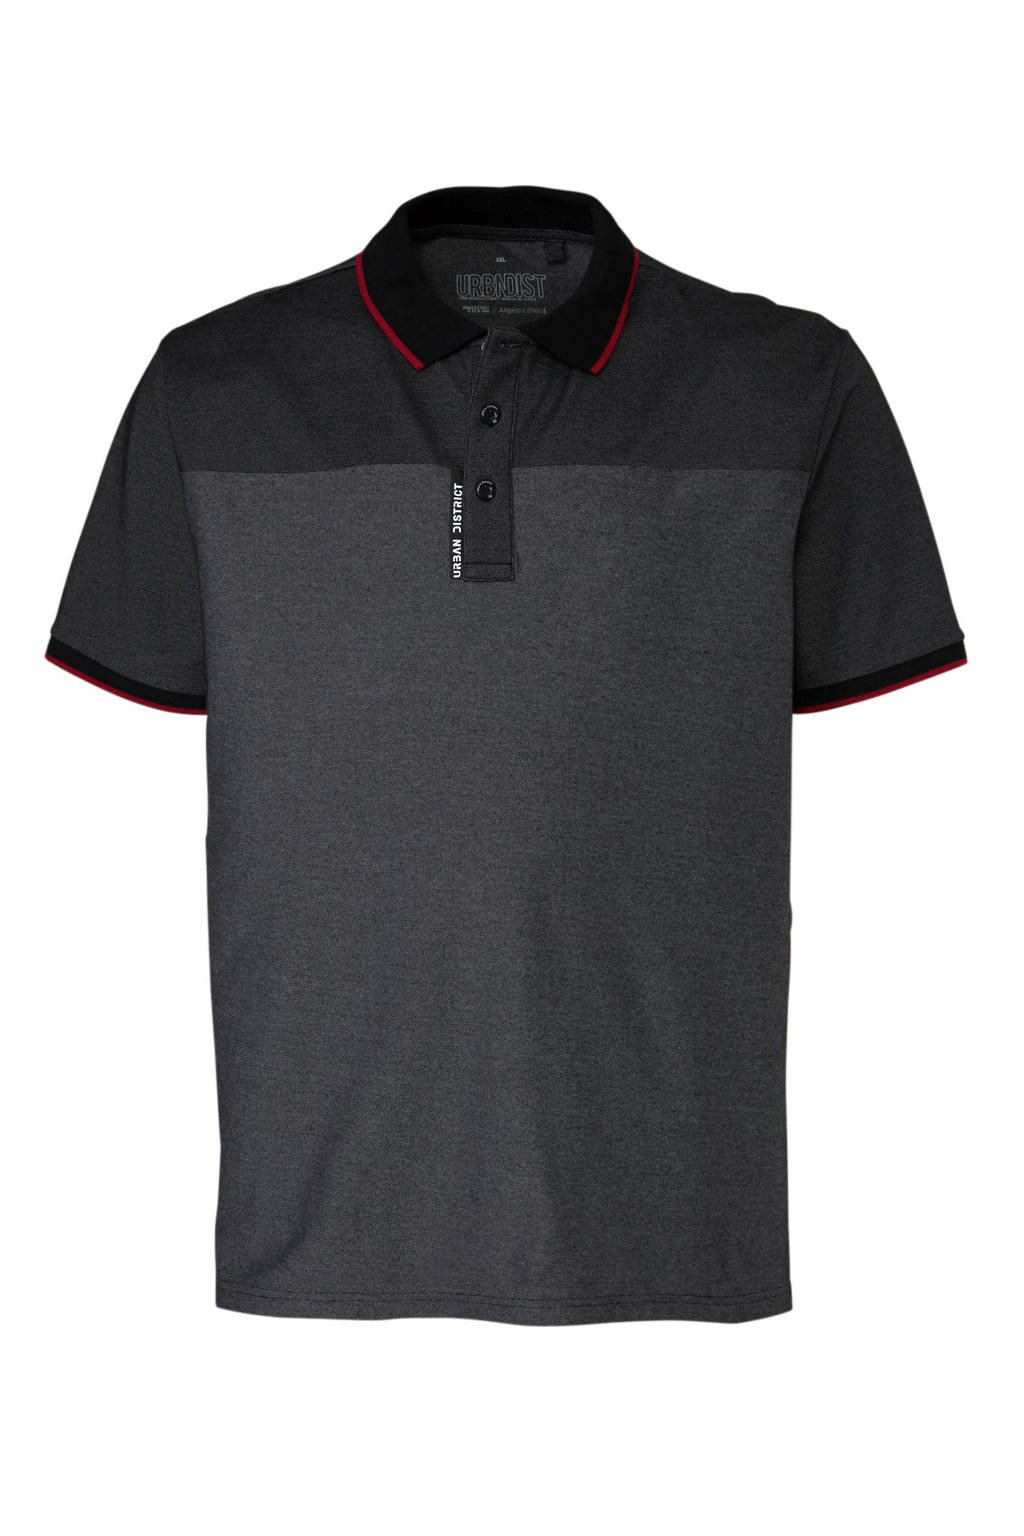 C&A XL Angelo Litrico polo, Antraciet